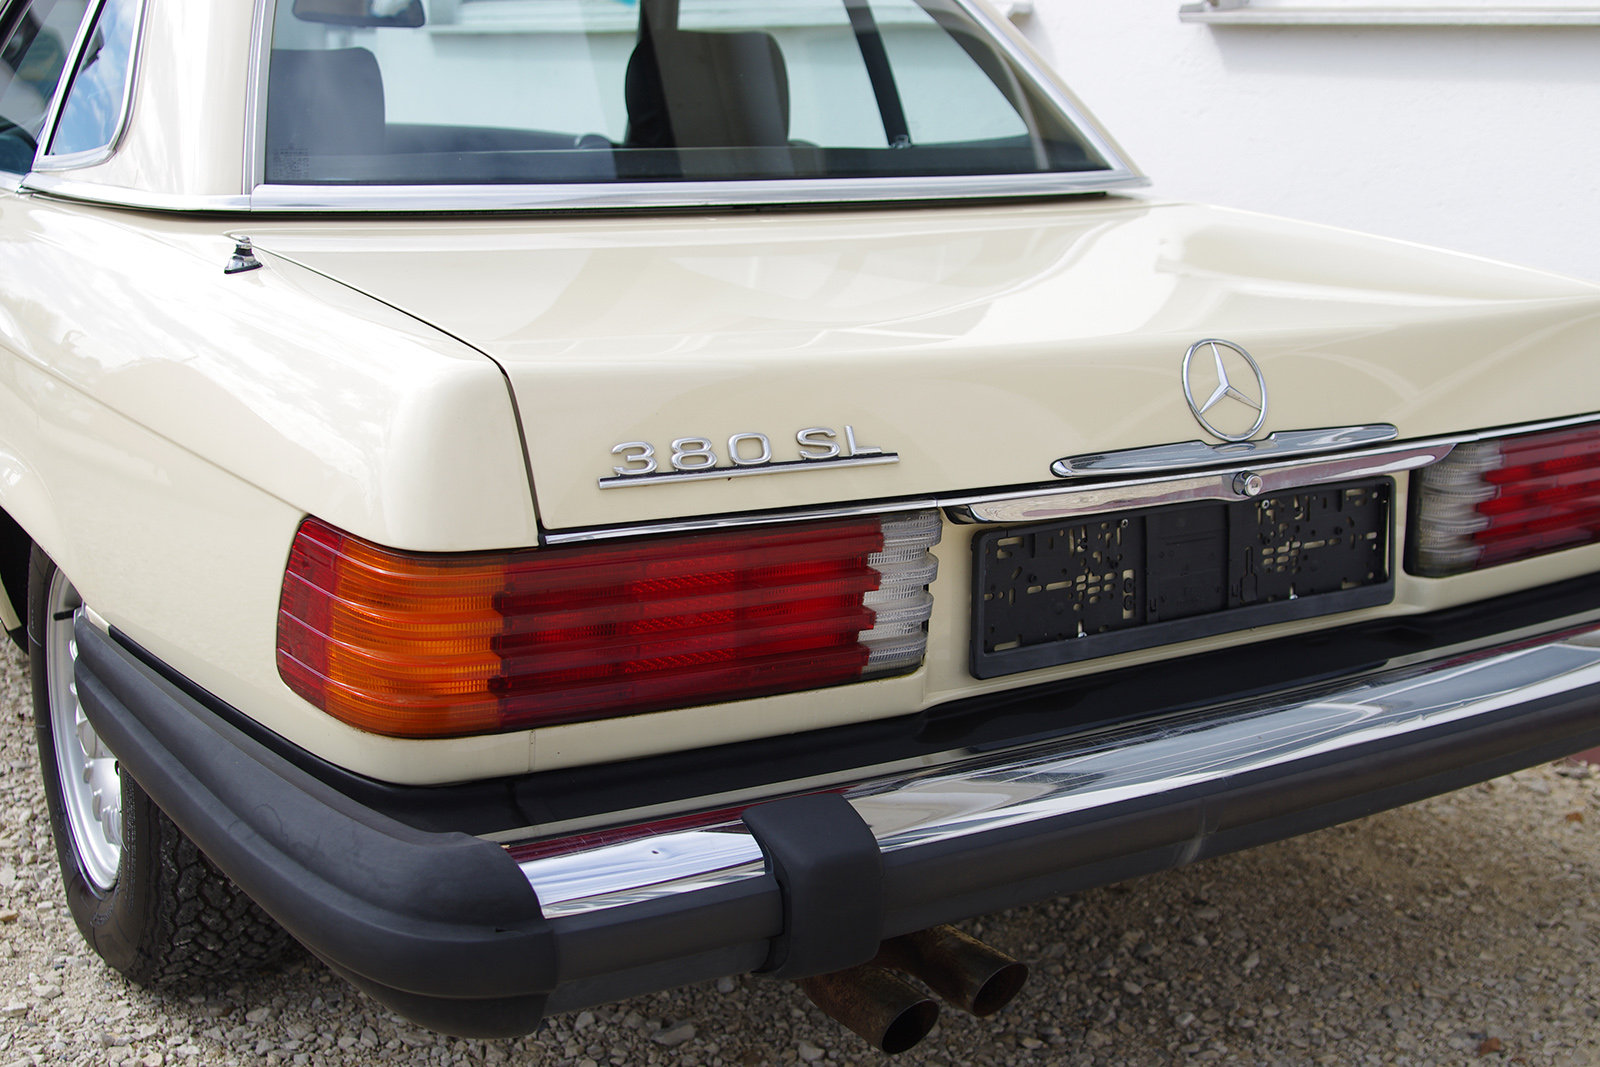 1982 Mercedes-Benz 380 SL - R 107 - partially restored SOLD (picture 2 of 6)